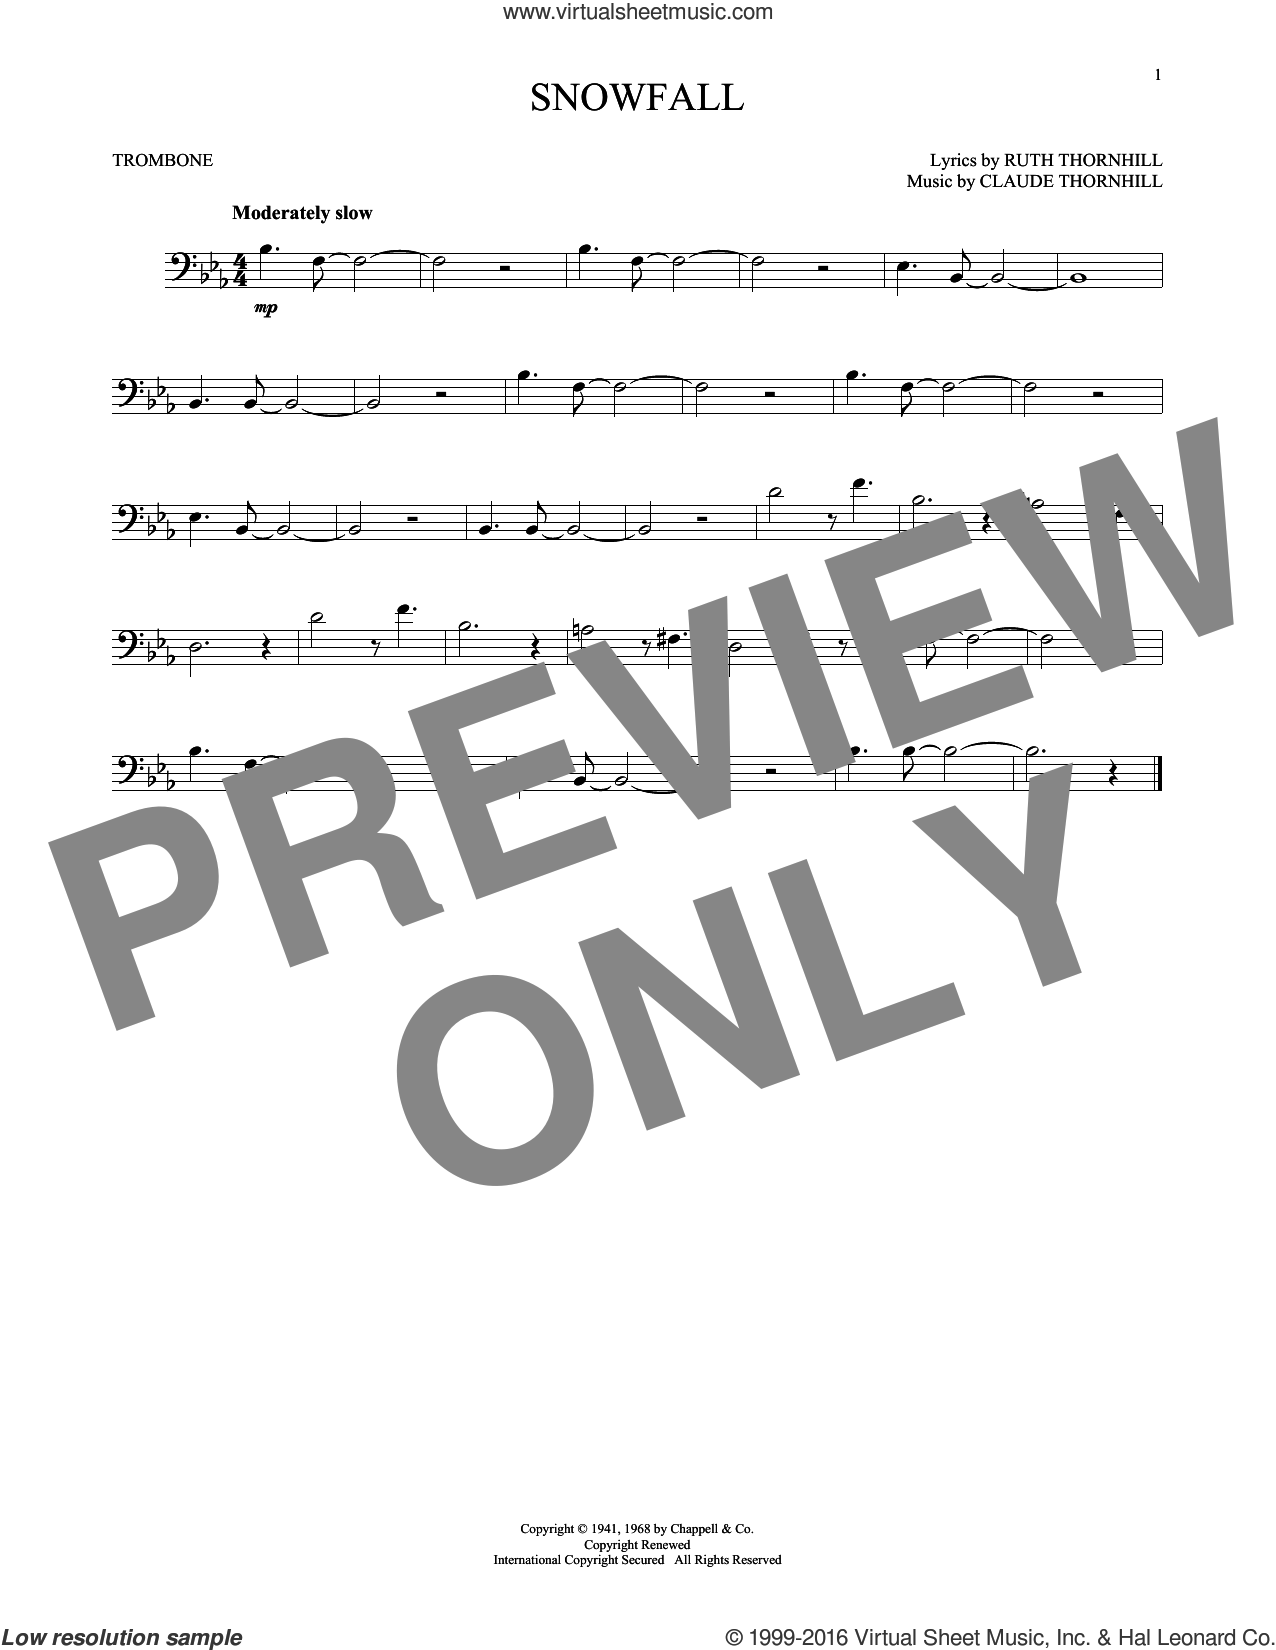 Snowfall sheet music for trombone solo by Ruth Thornhill